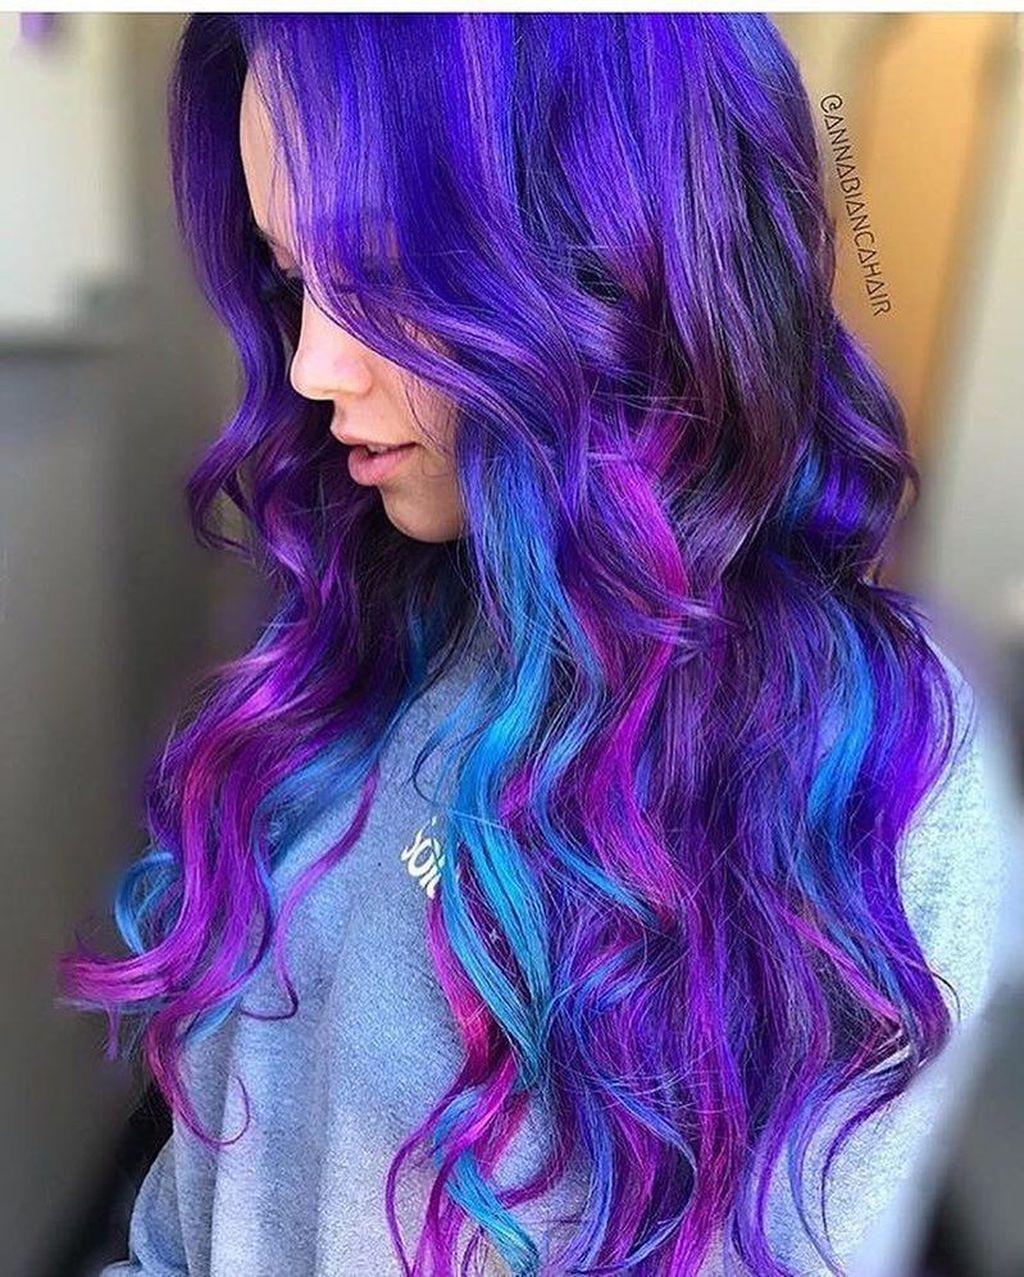 40 Best Funky Colored Hair That Look So Carefree In 2020 Funky